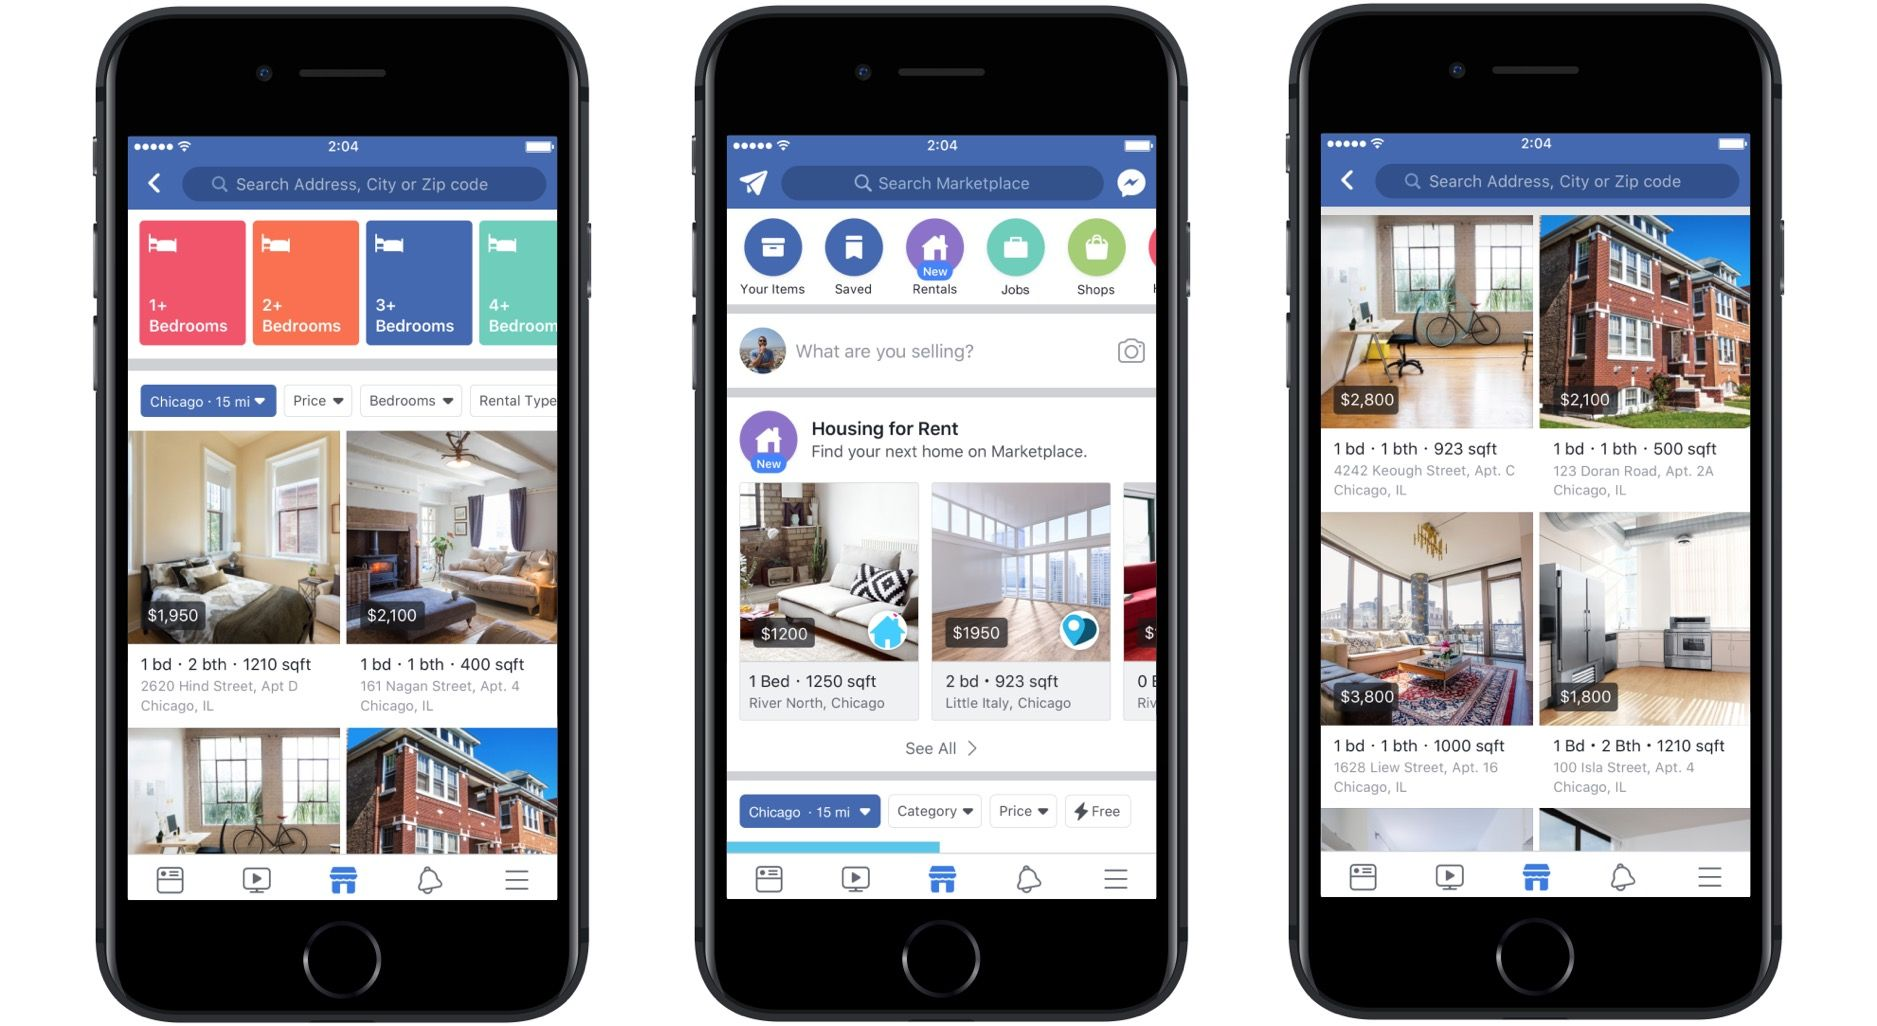 Facebook Marketplace can help you find a new place to rent ...